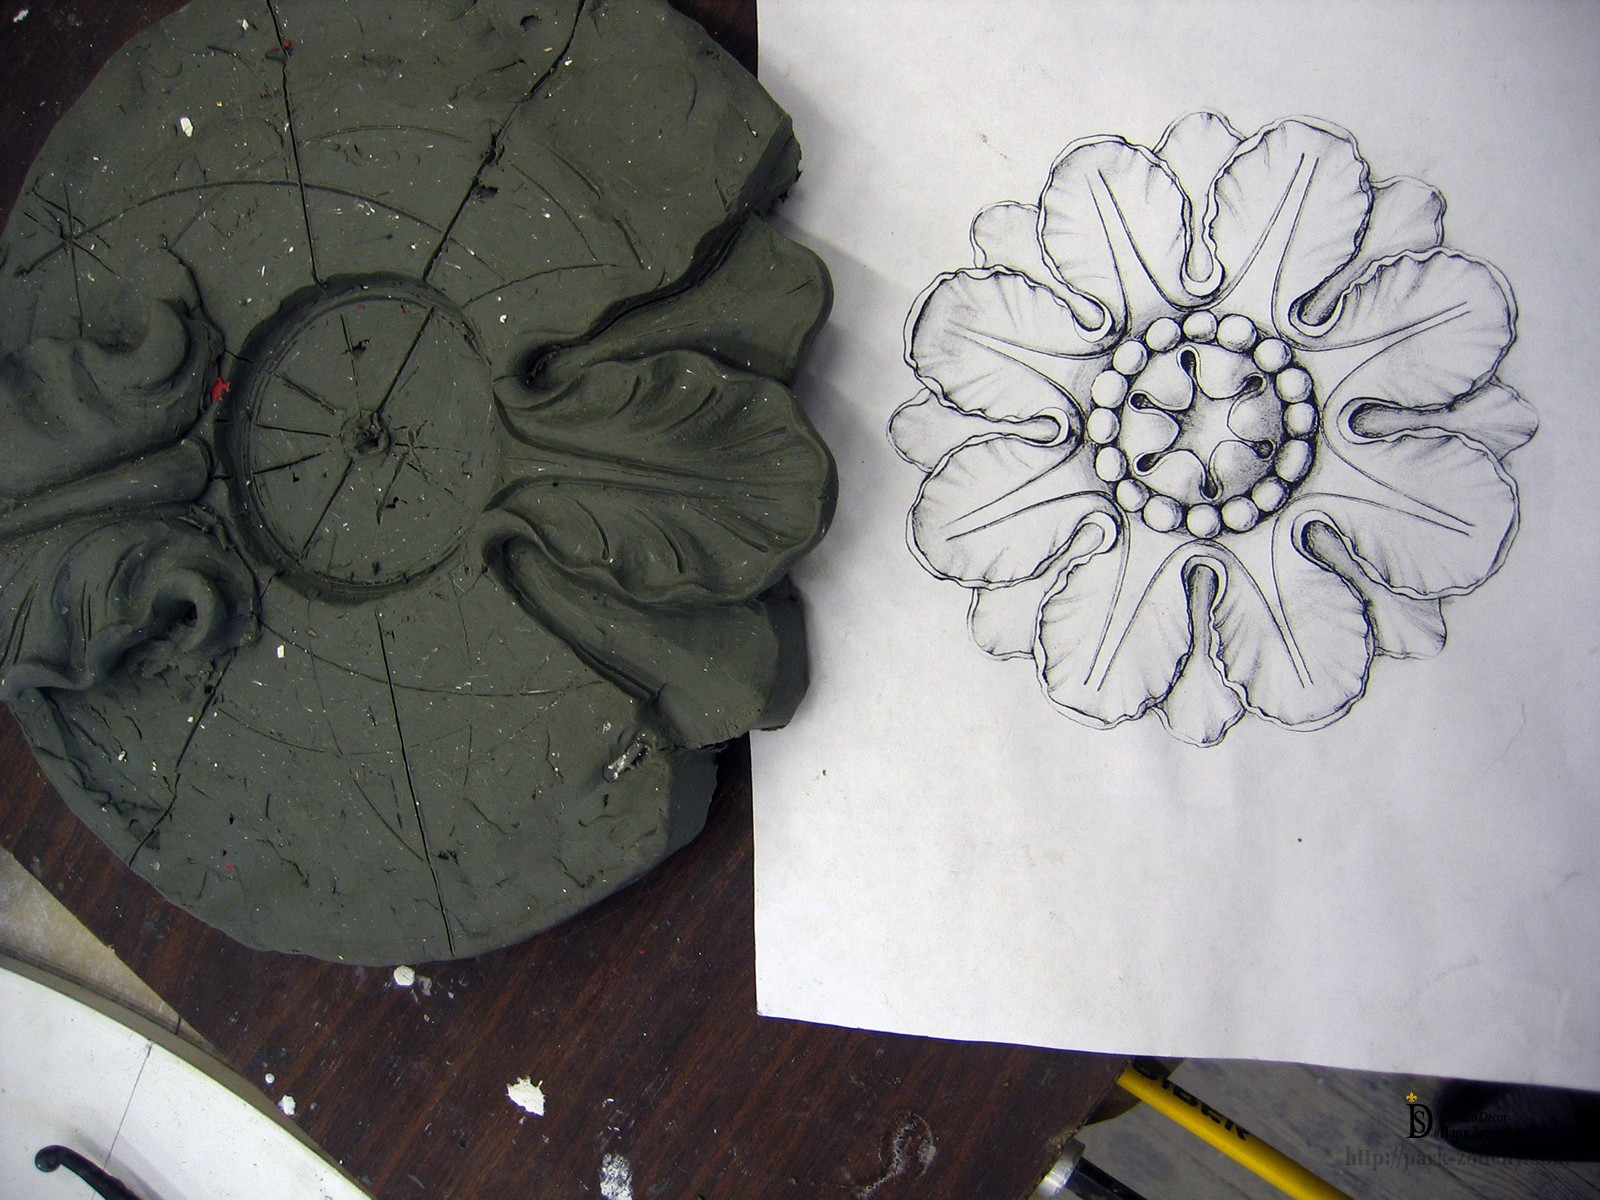 sketch and clay model from plaster moldings